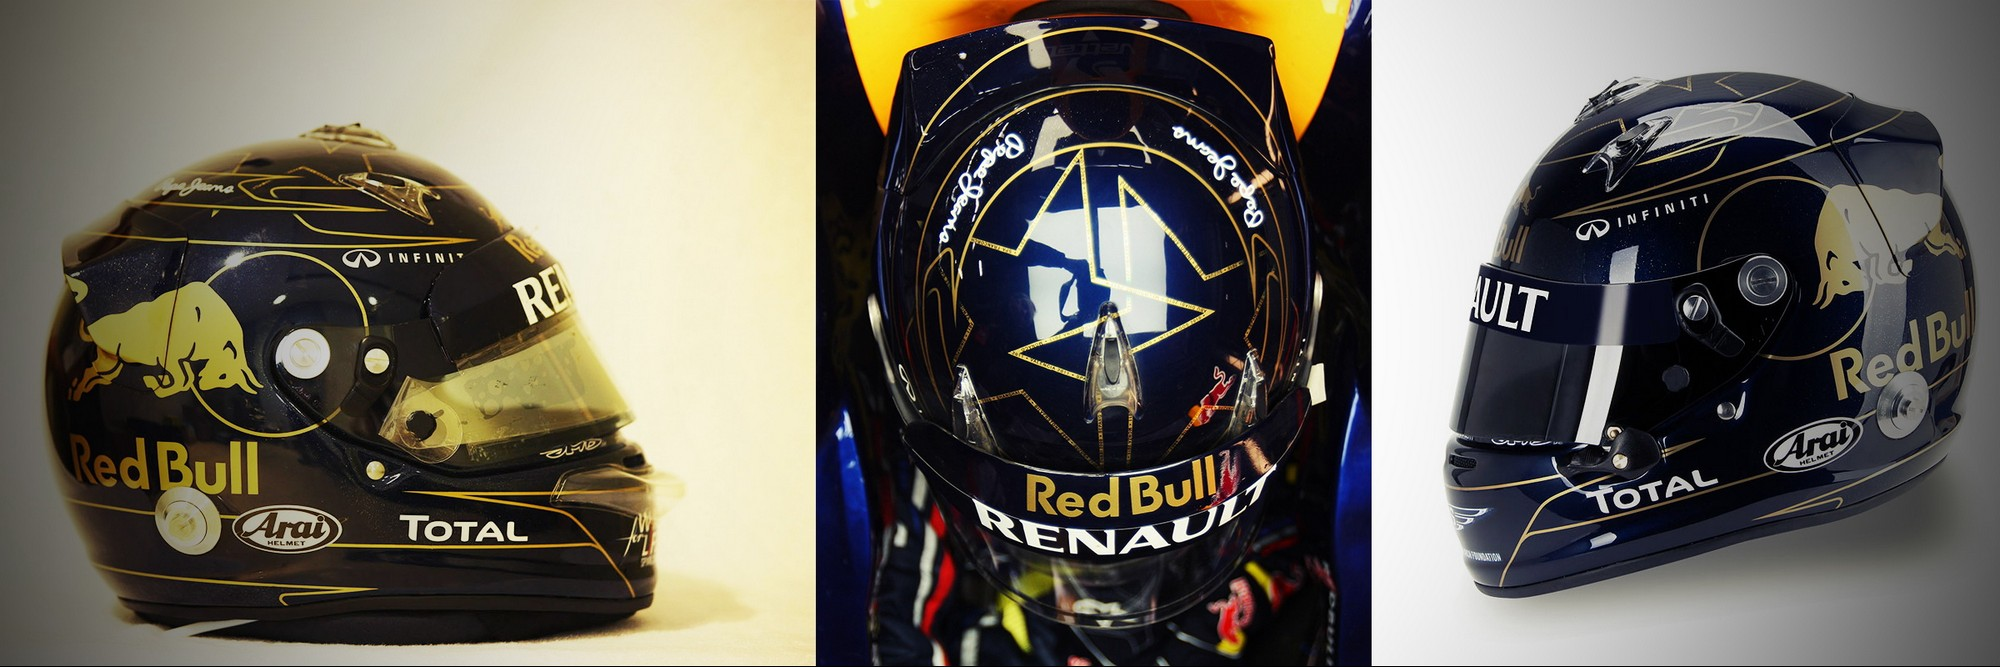 Шлем Себастьяна Феттеля на Гран-При Кореи 2011 | 2011 Korean Grand Prix helmet of Sebastian Vettel